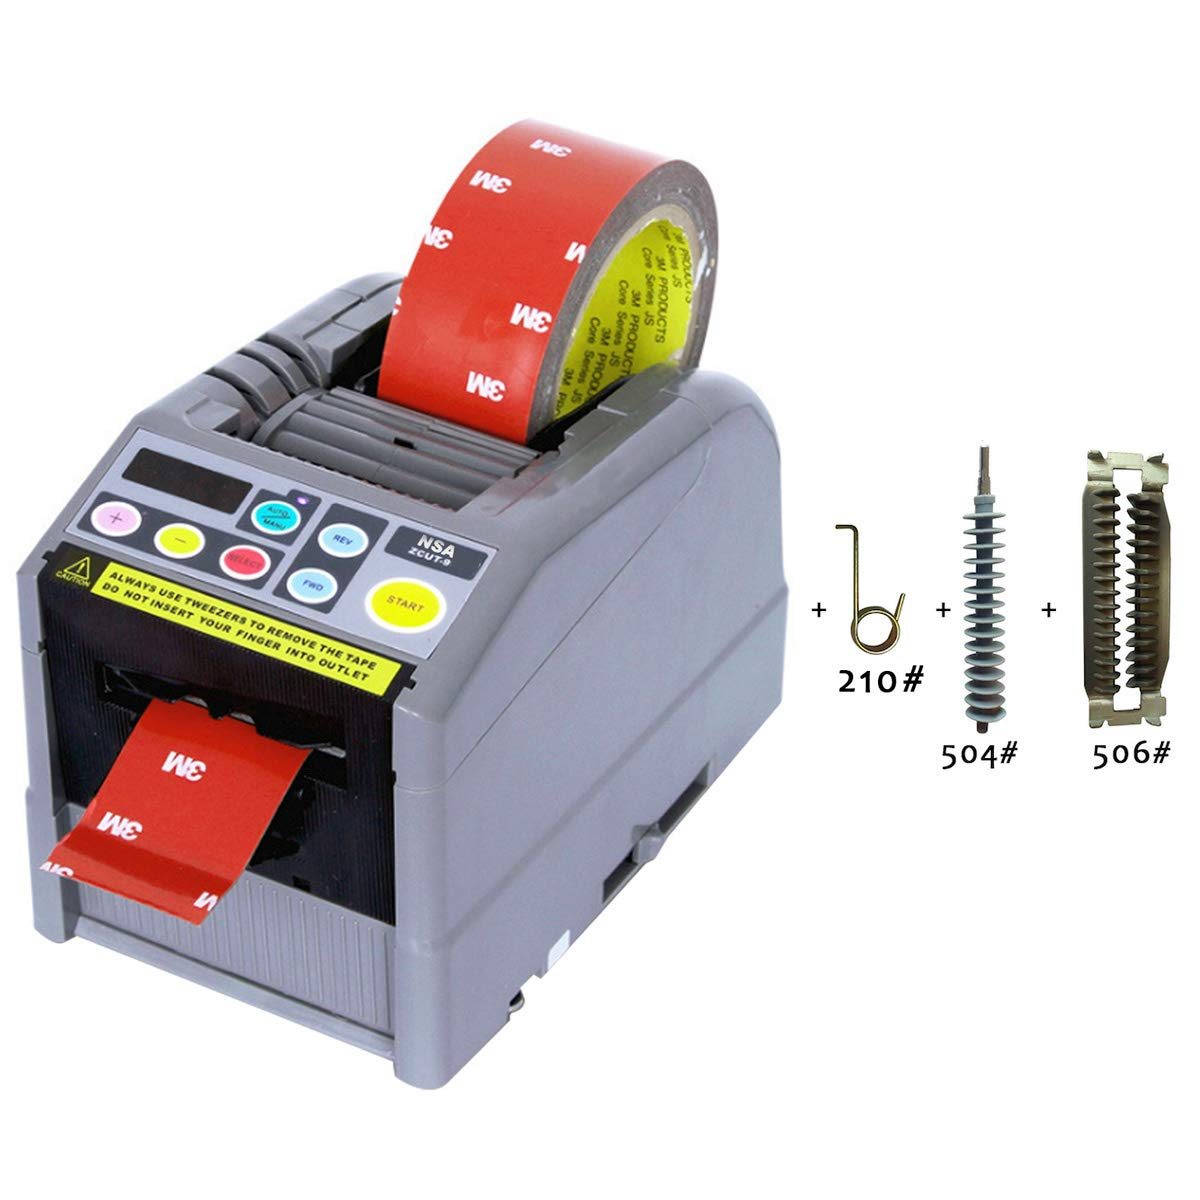 NSA ZCUT-9 Automatic Tape Dispenser Definite Length Up To 39 Inch length Tape and Suit for Many Kinds Tape Cutting/PCB Board 418#/419# Not Avaliable Of Normals In The Market/For Kinds Of Tape Cutting by NSA